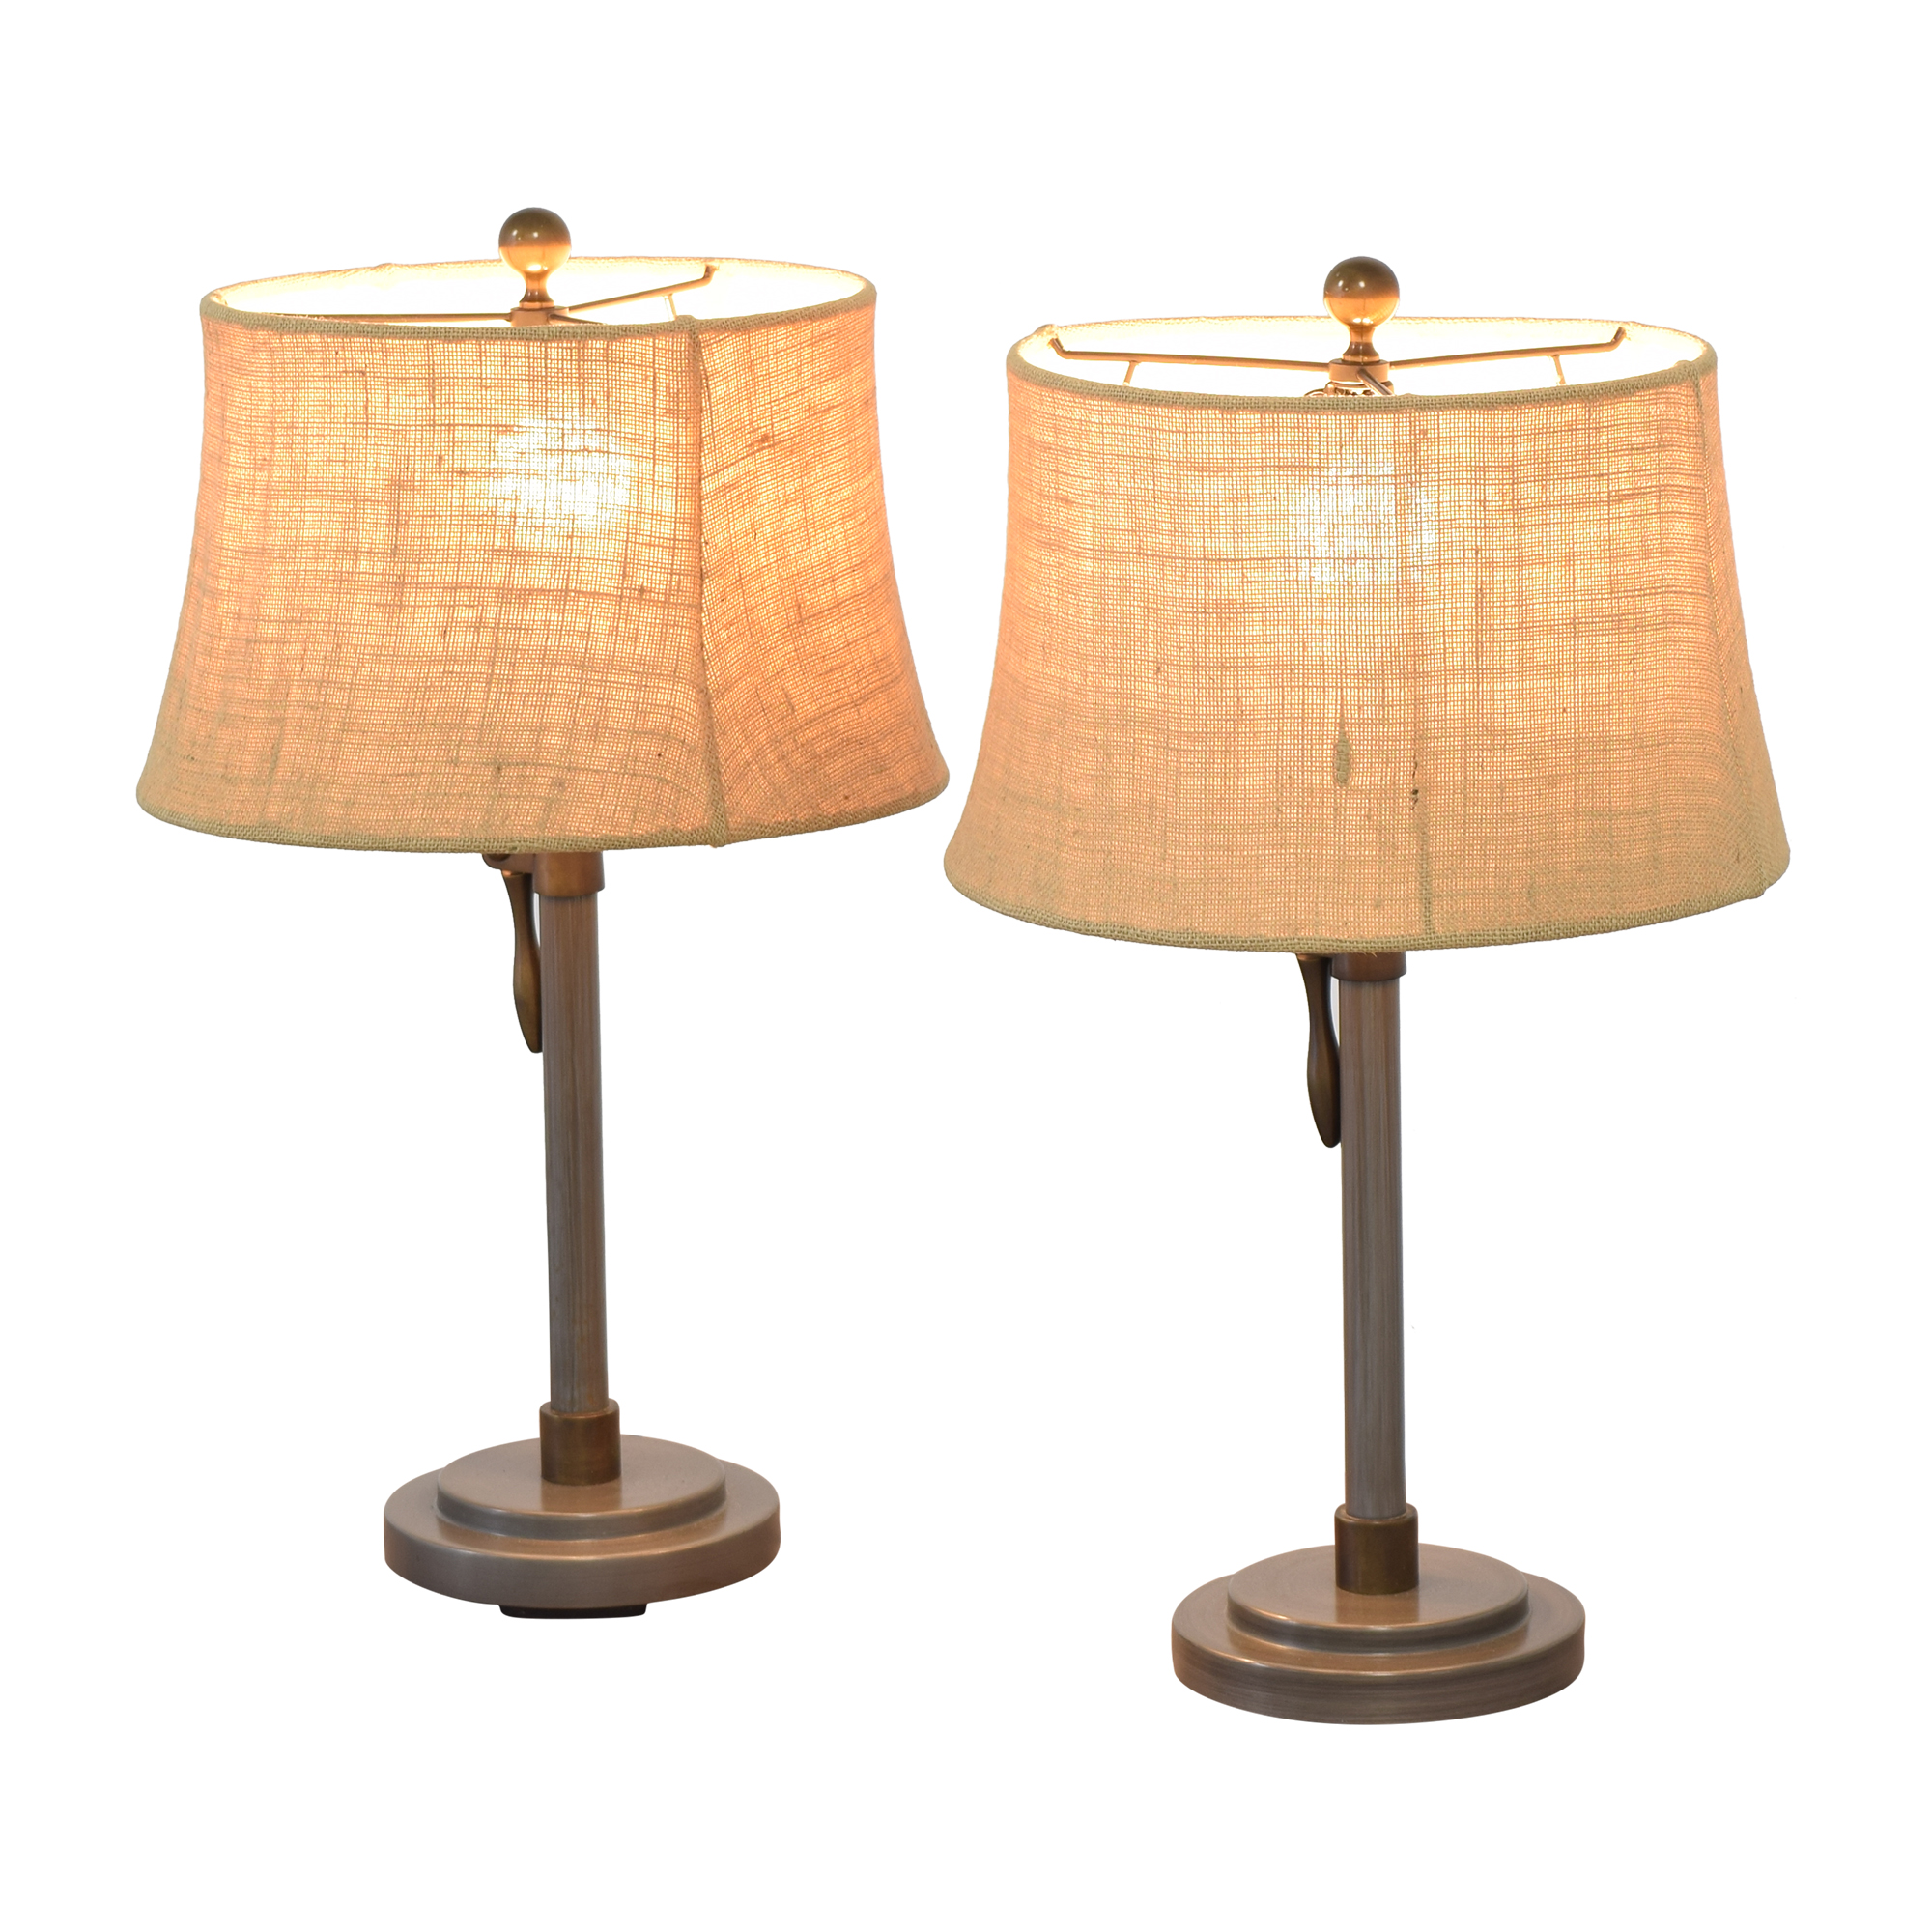 Pottery Barn Pottery Barn Sutter Adjustable Lever Table Lamps pa